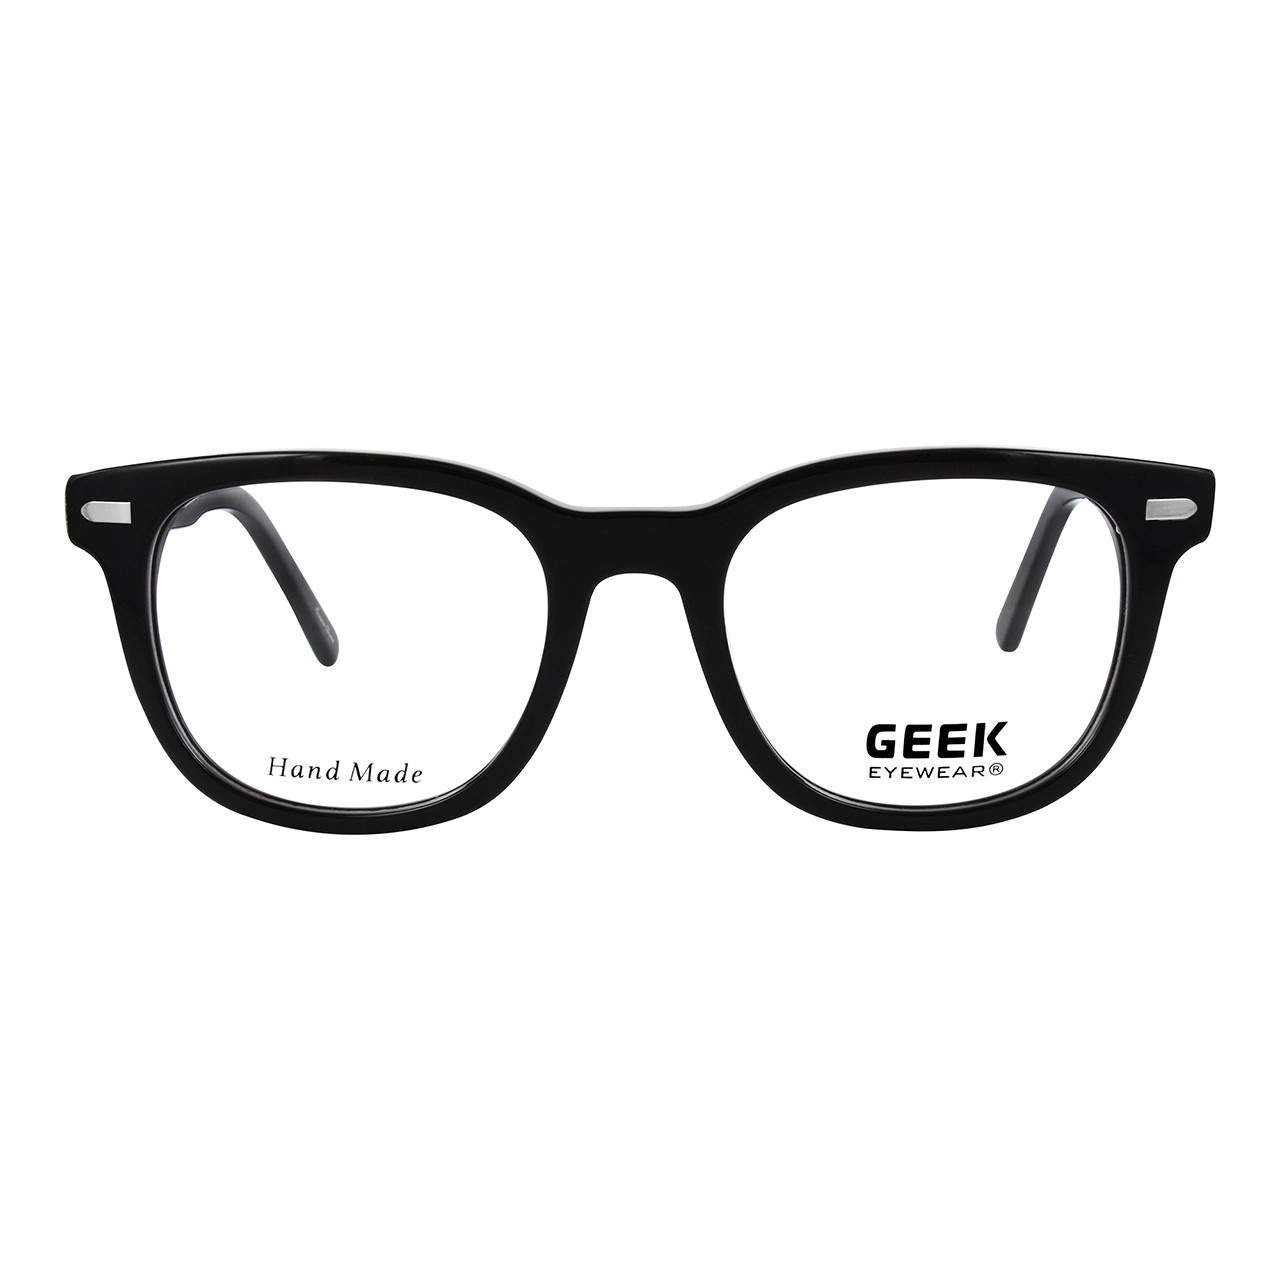 GEEK Eyewear GEEK AUGUST Sunglasses